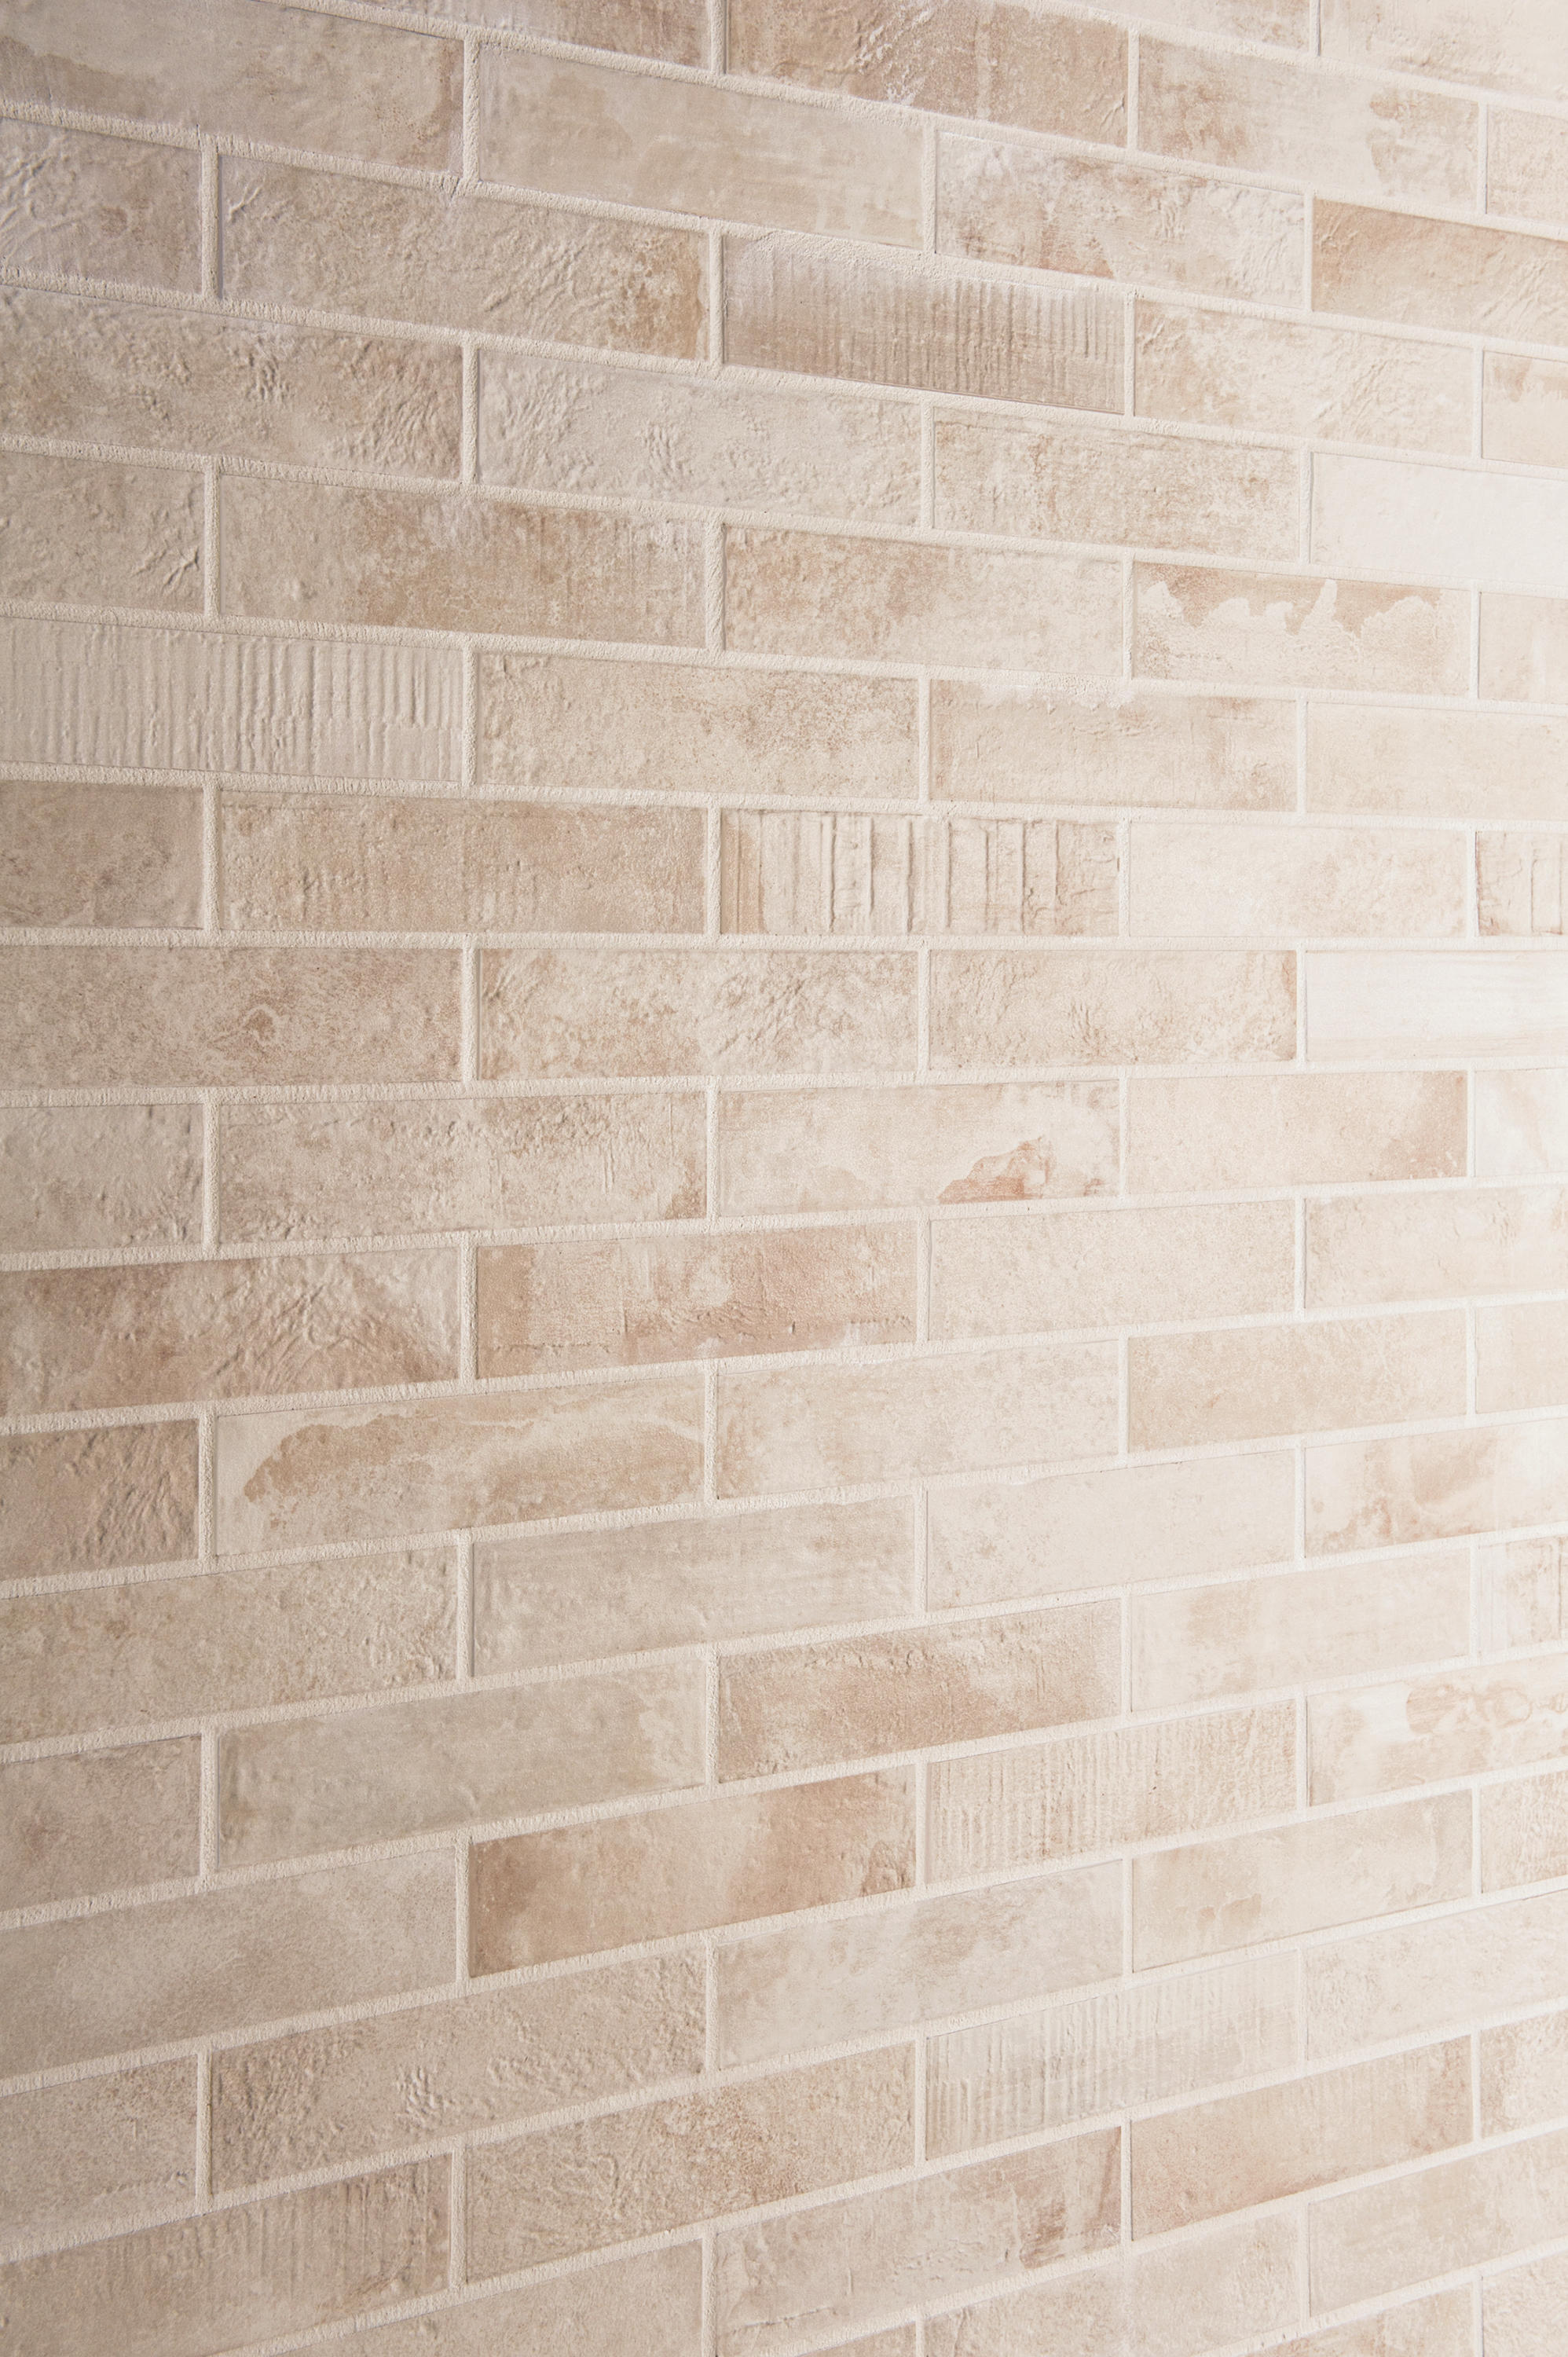 Kotto Brick Avana Ceramic Tiles From Emilgroup Architonic